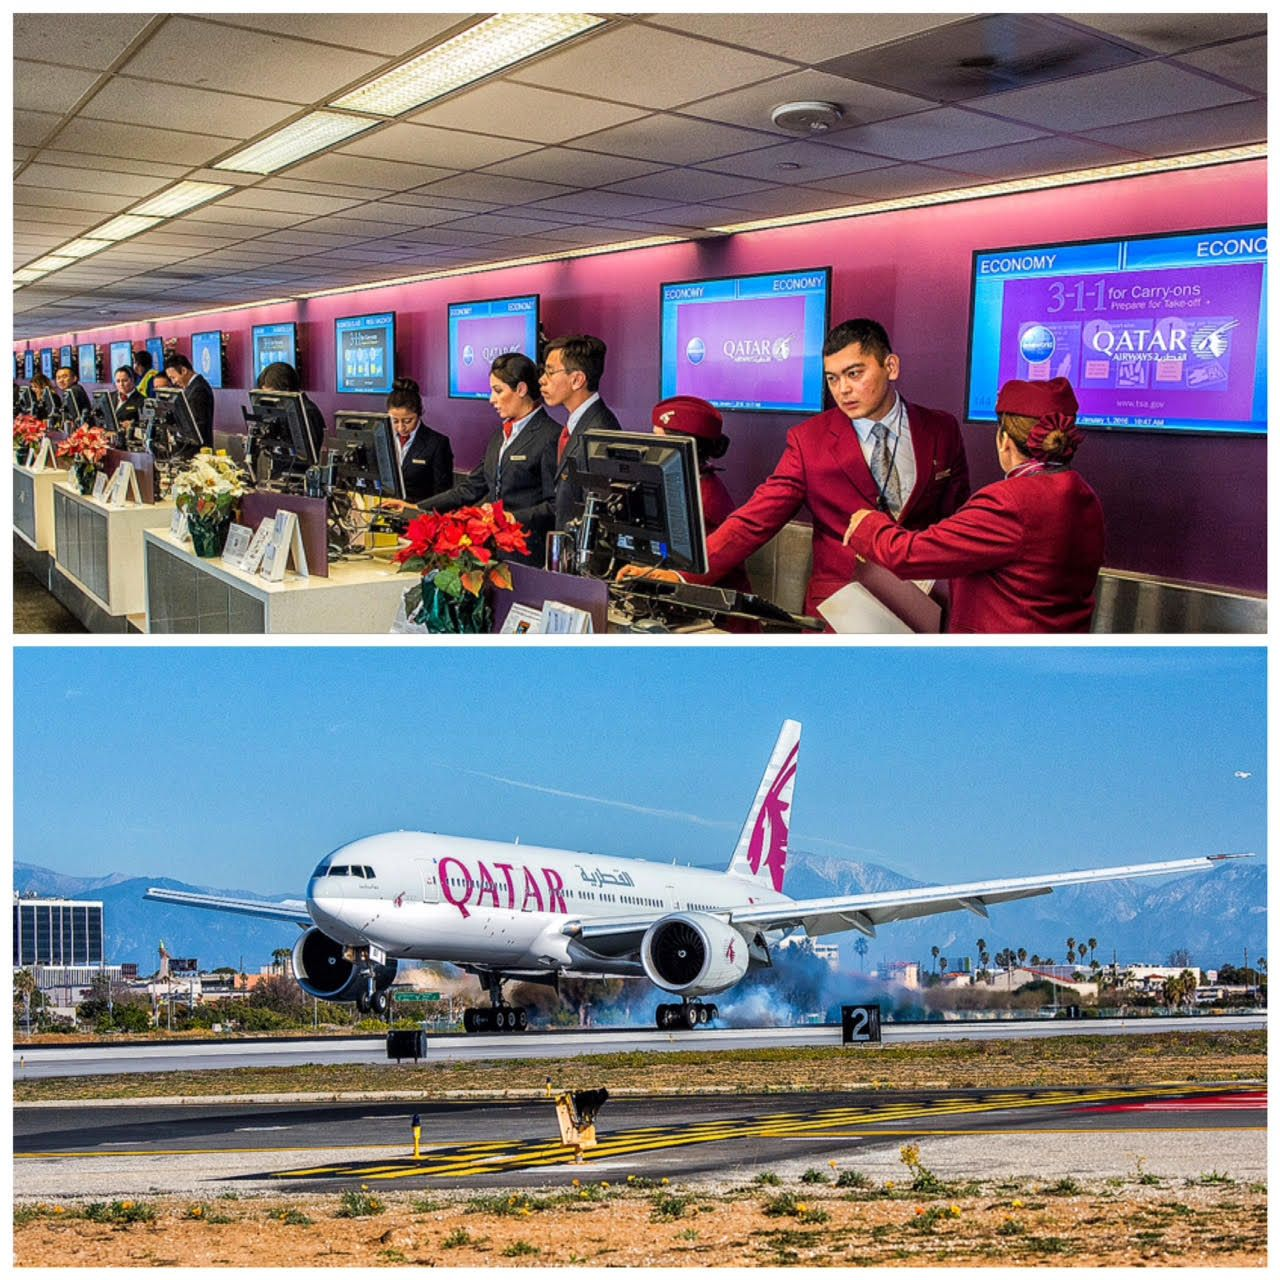 Qatar Airways Kicked Off The New Year Launching Into The Skies With Daily Nonstop Lax Doha Service Let S Welcome Qatar Airways To Qatar Airways Qatar Lax